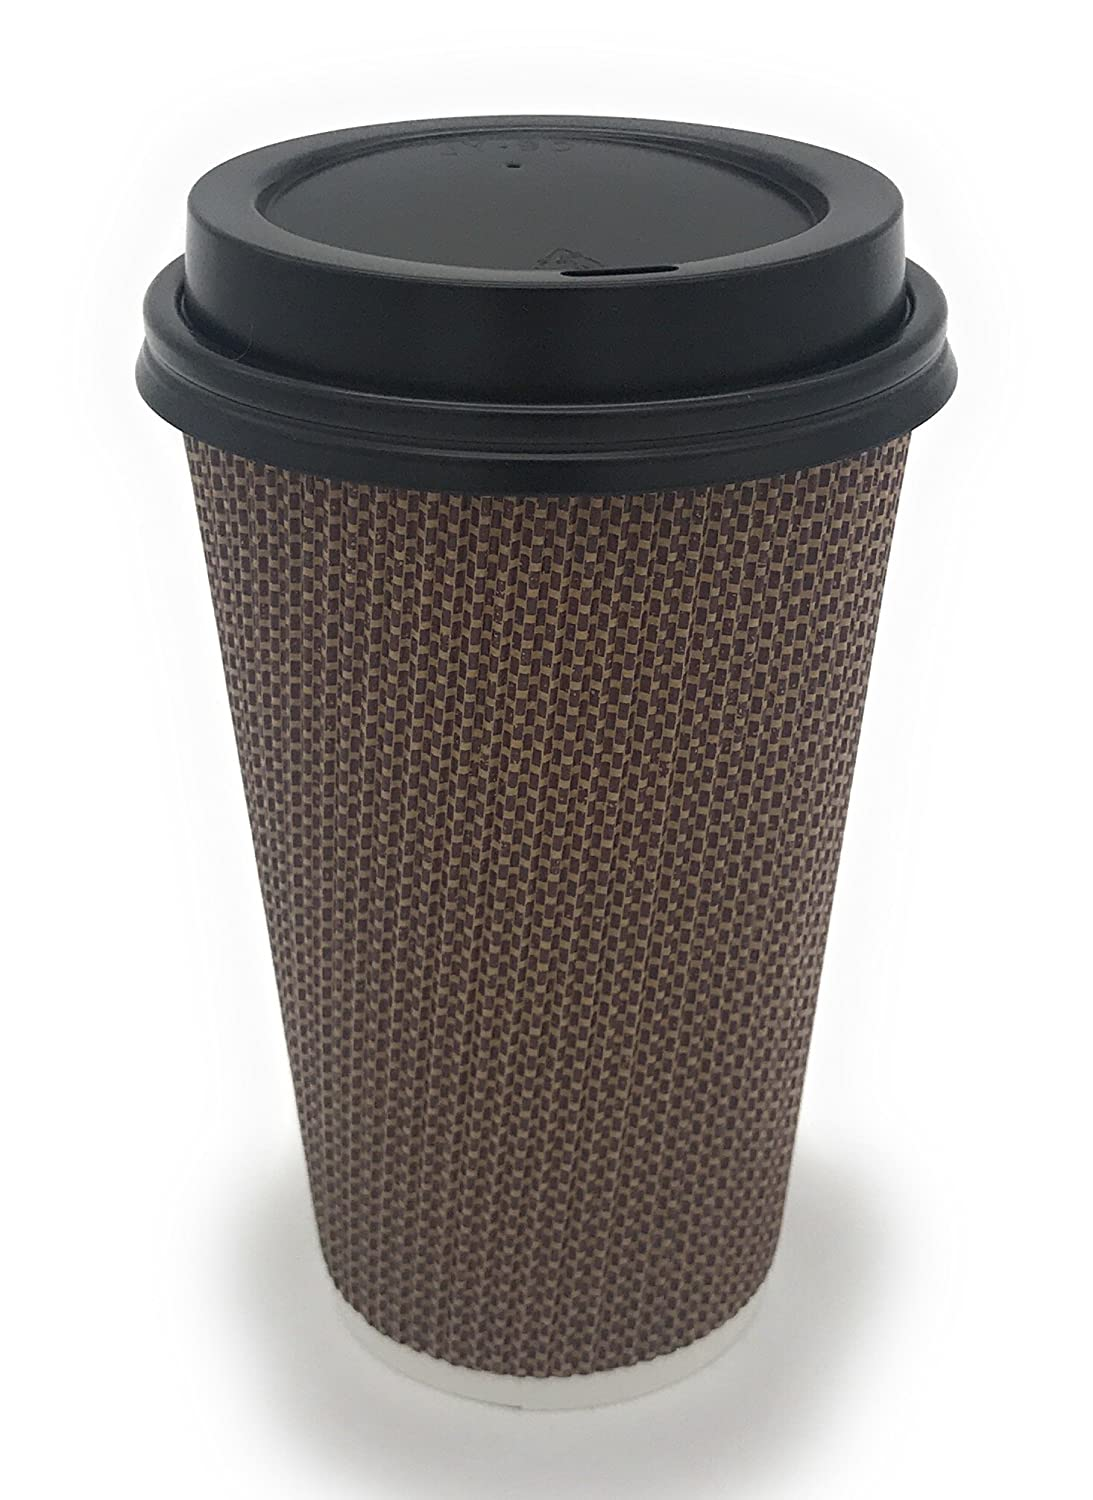 [340 COUNT] 16 oz Disposable Double Walled Hot Cups with Lids - No Sleeves needed Premium Insulated Ripple Wall Hot Coffee Tea Chocolate Drinks Perfect Travel To Go Paper Cup and lid Brown Geometric Harvest Pack HPI-DW-PCP-340